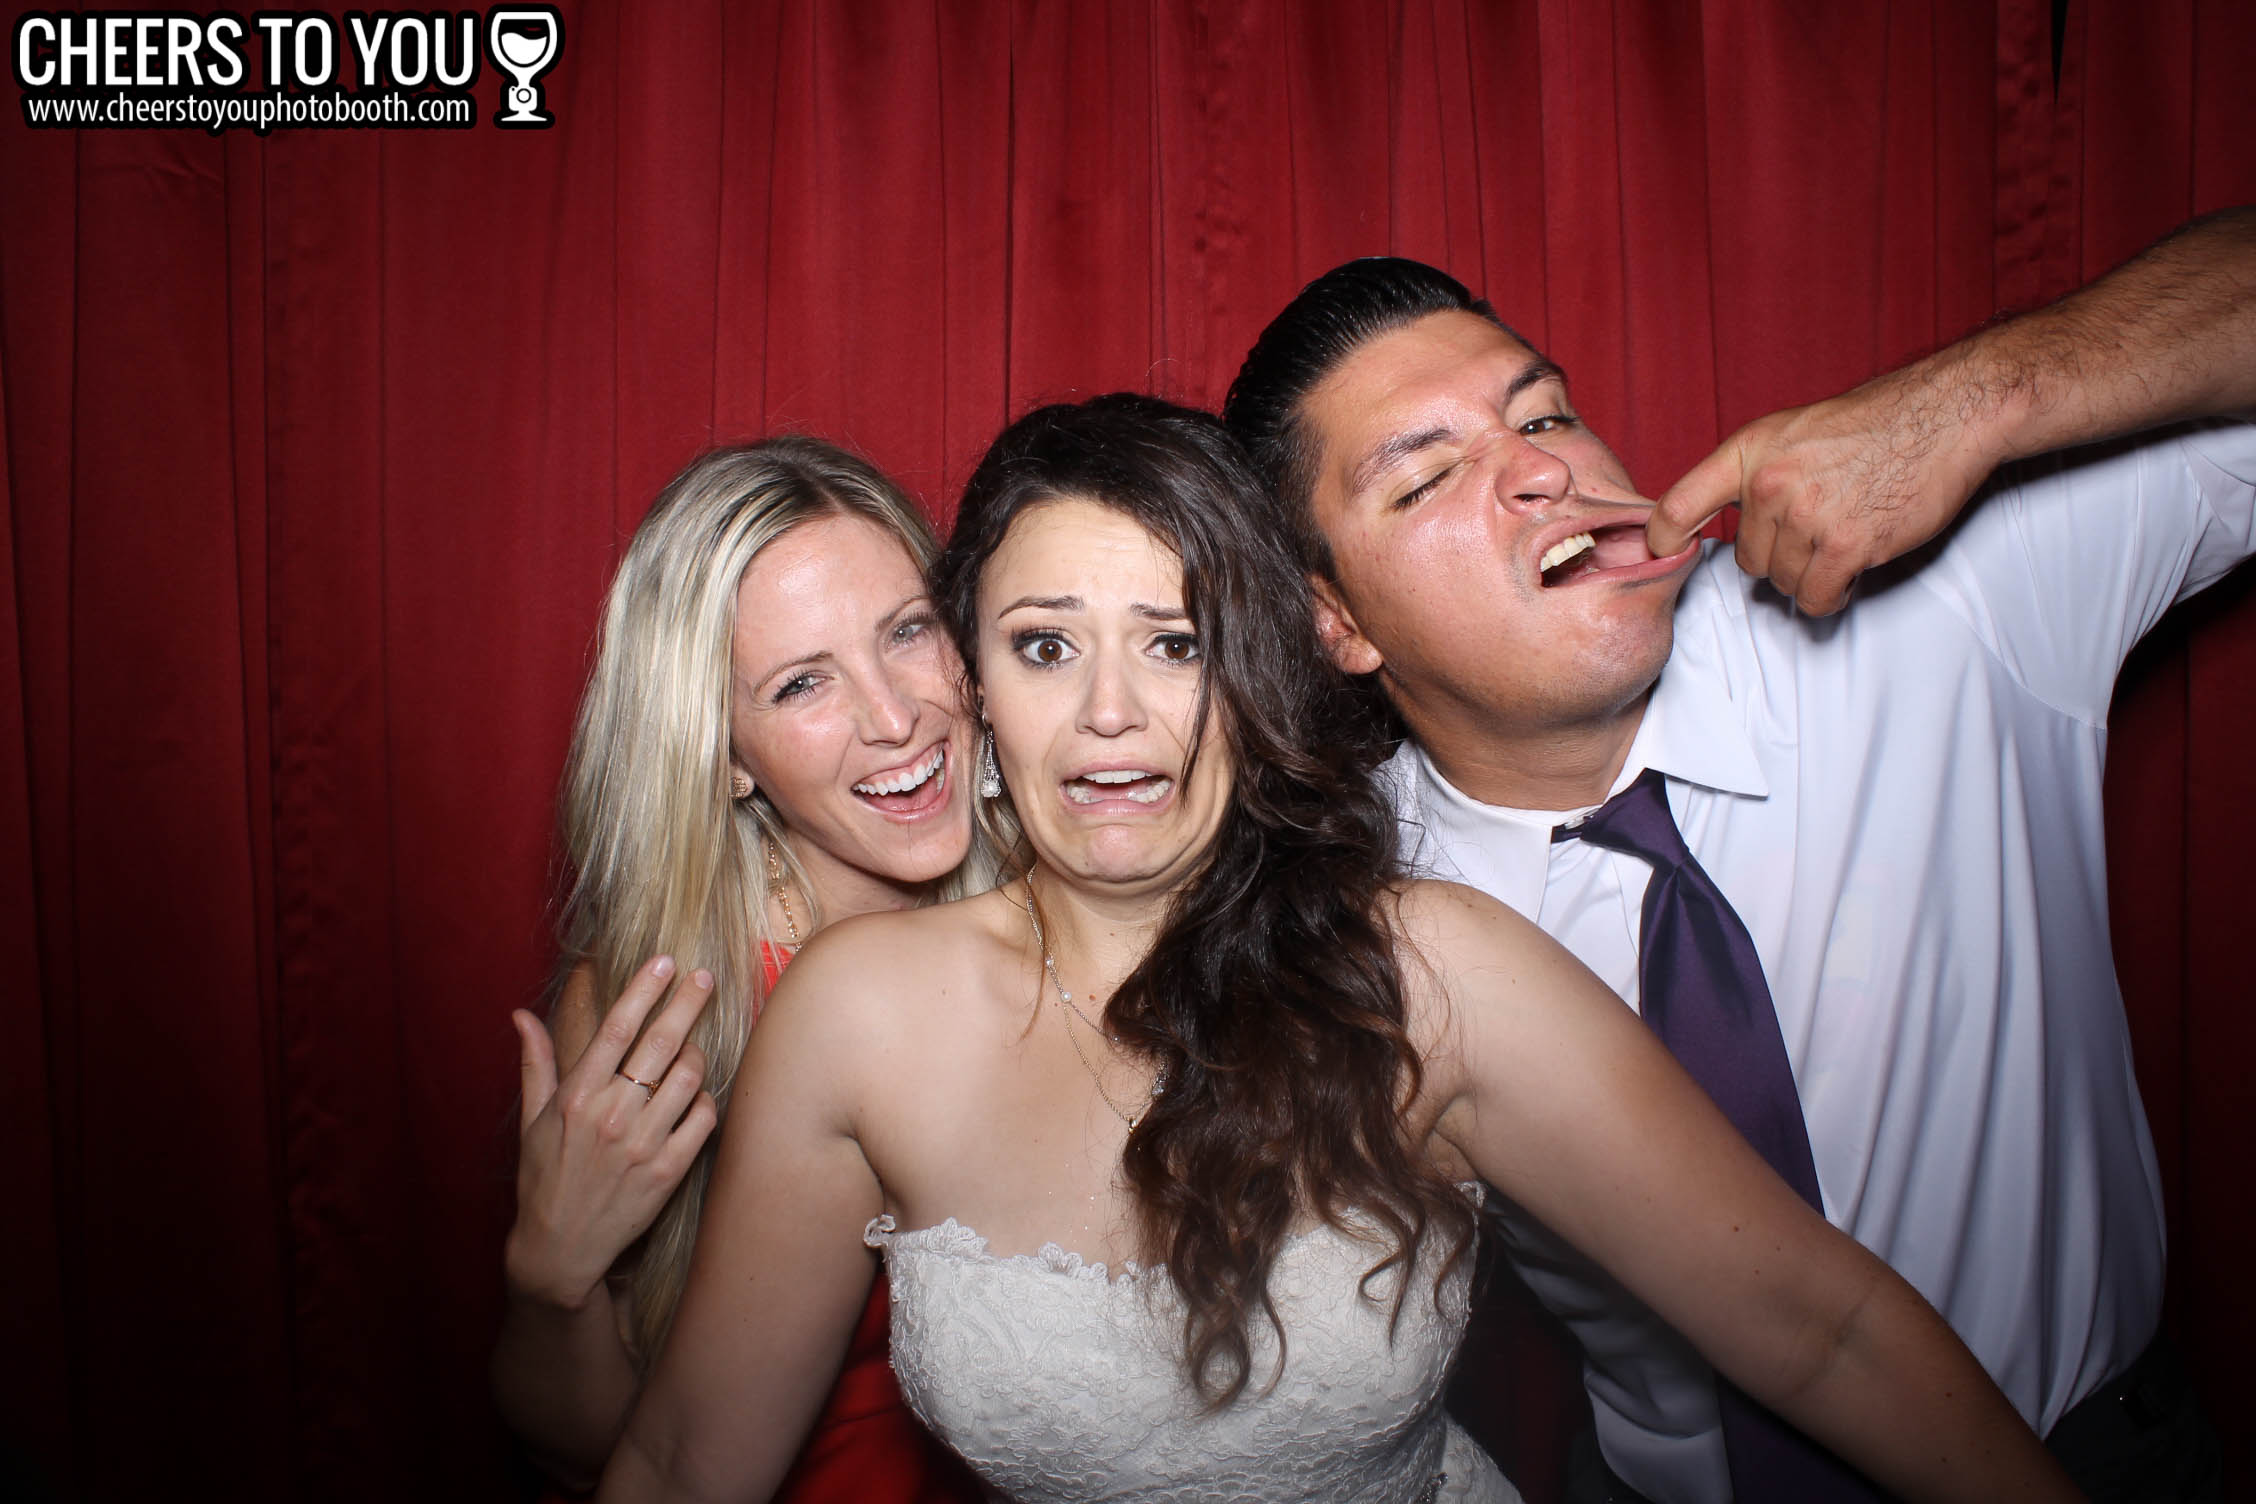 Cheers To You Photo Booth | Huntington Beach, CA | Jake & Kell Wedding